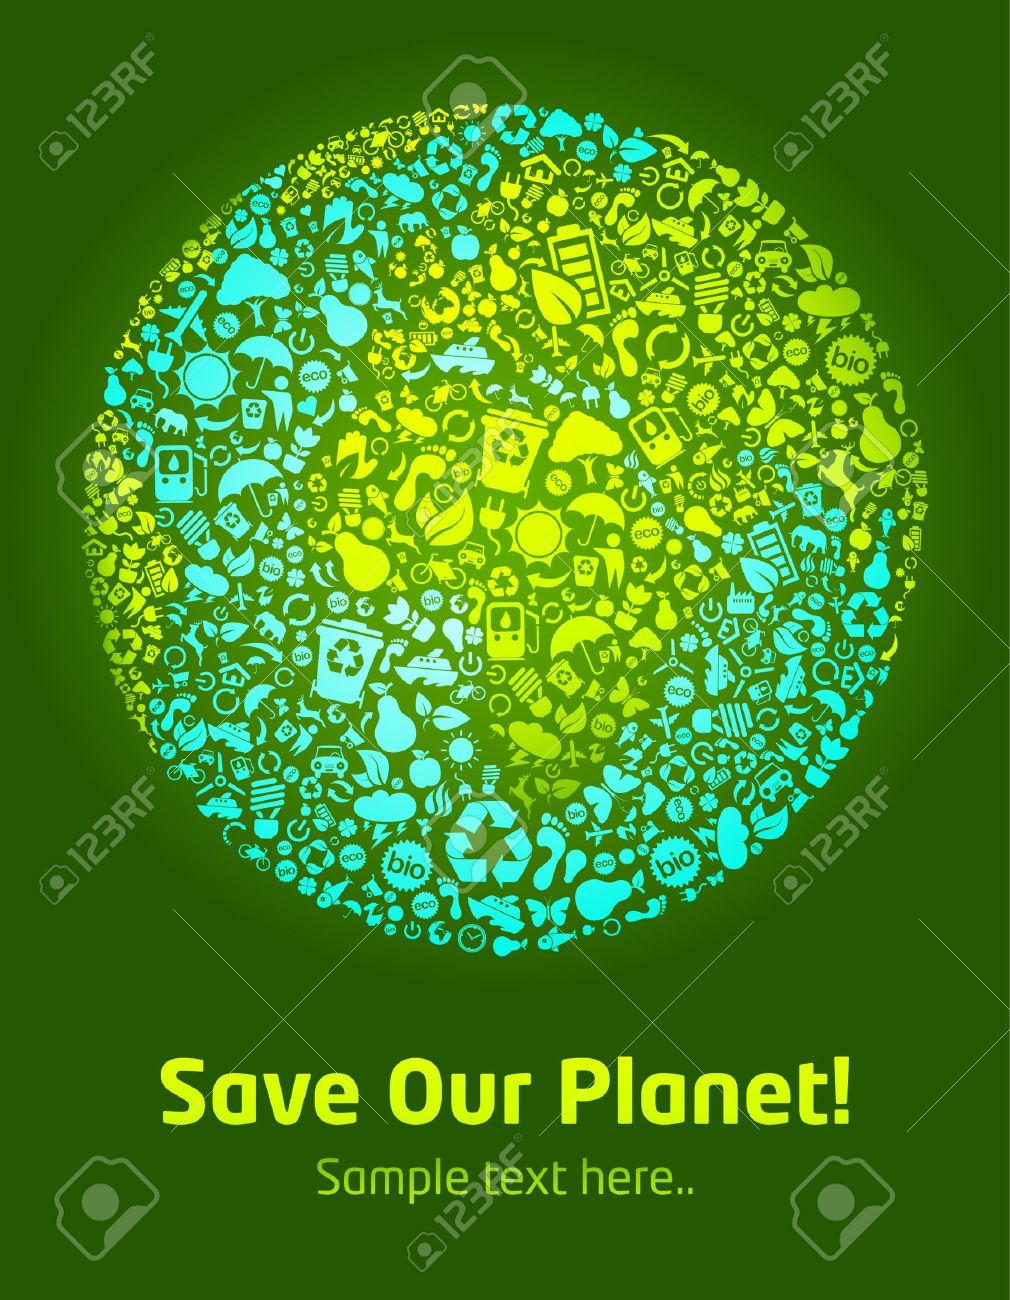 Save our planet green poster template Stock Vector - 9342366